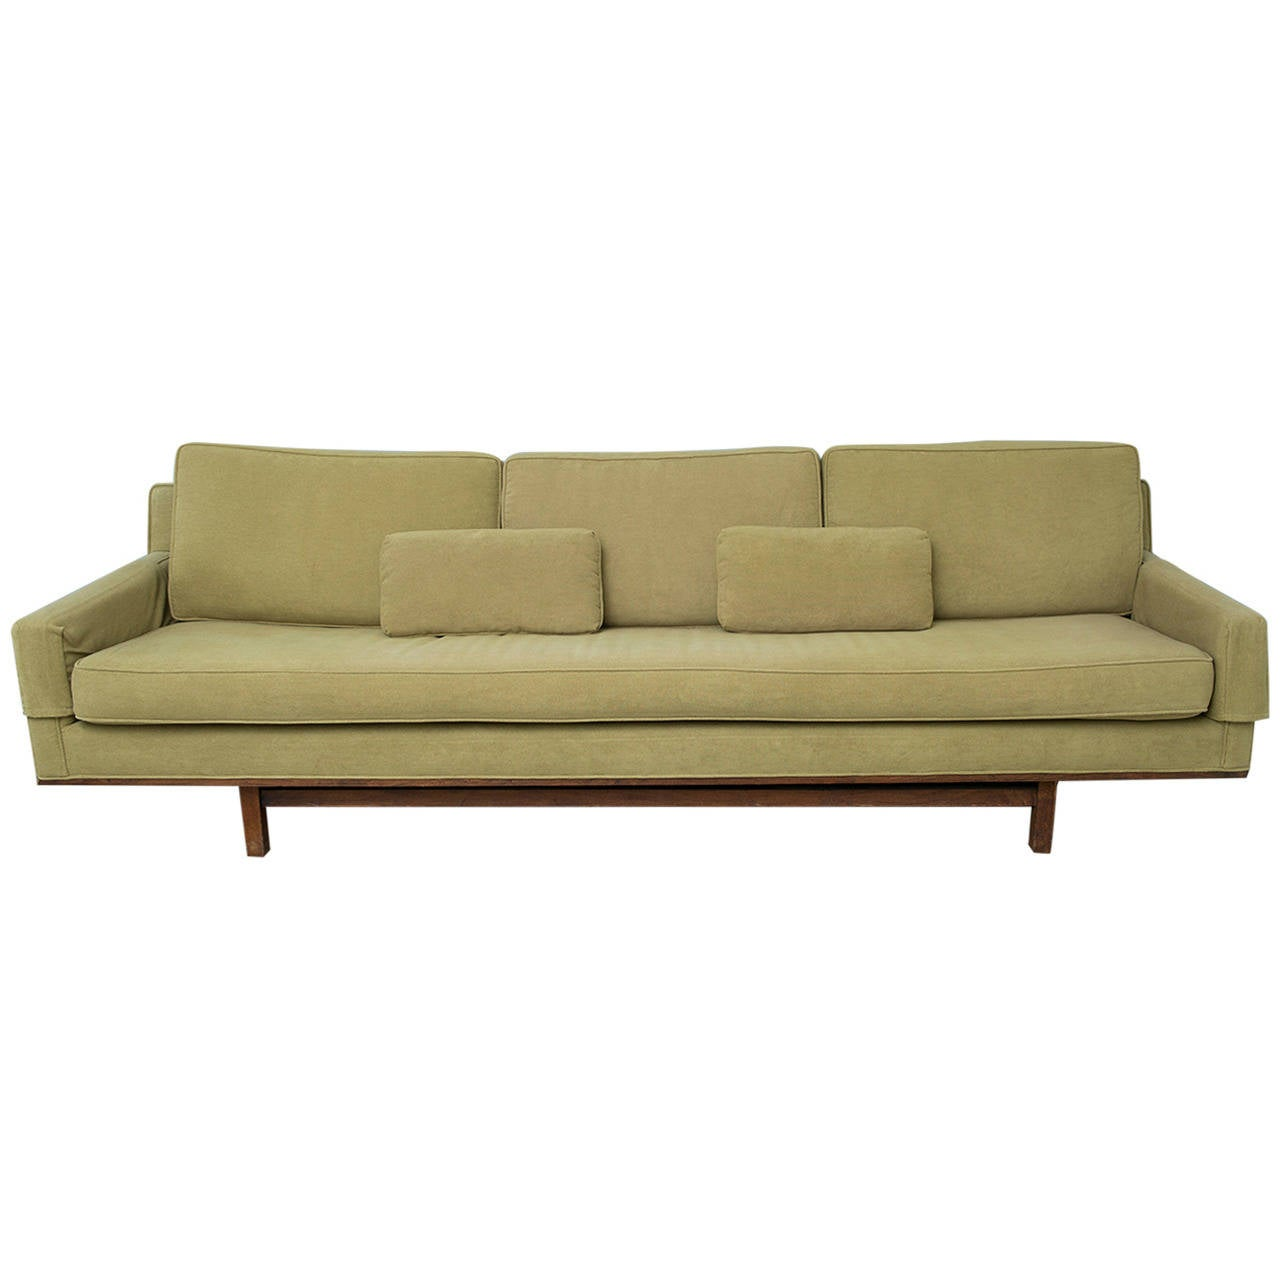 Dunbar for Wormley Style Sofa at 1stdibs : 2361392l from 1stdibs.com size 1280 x 1280 jpeg 62kB